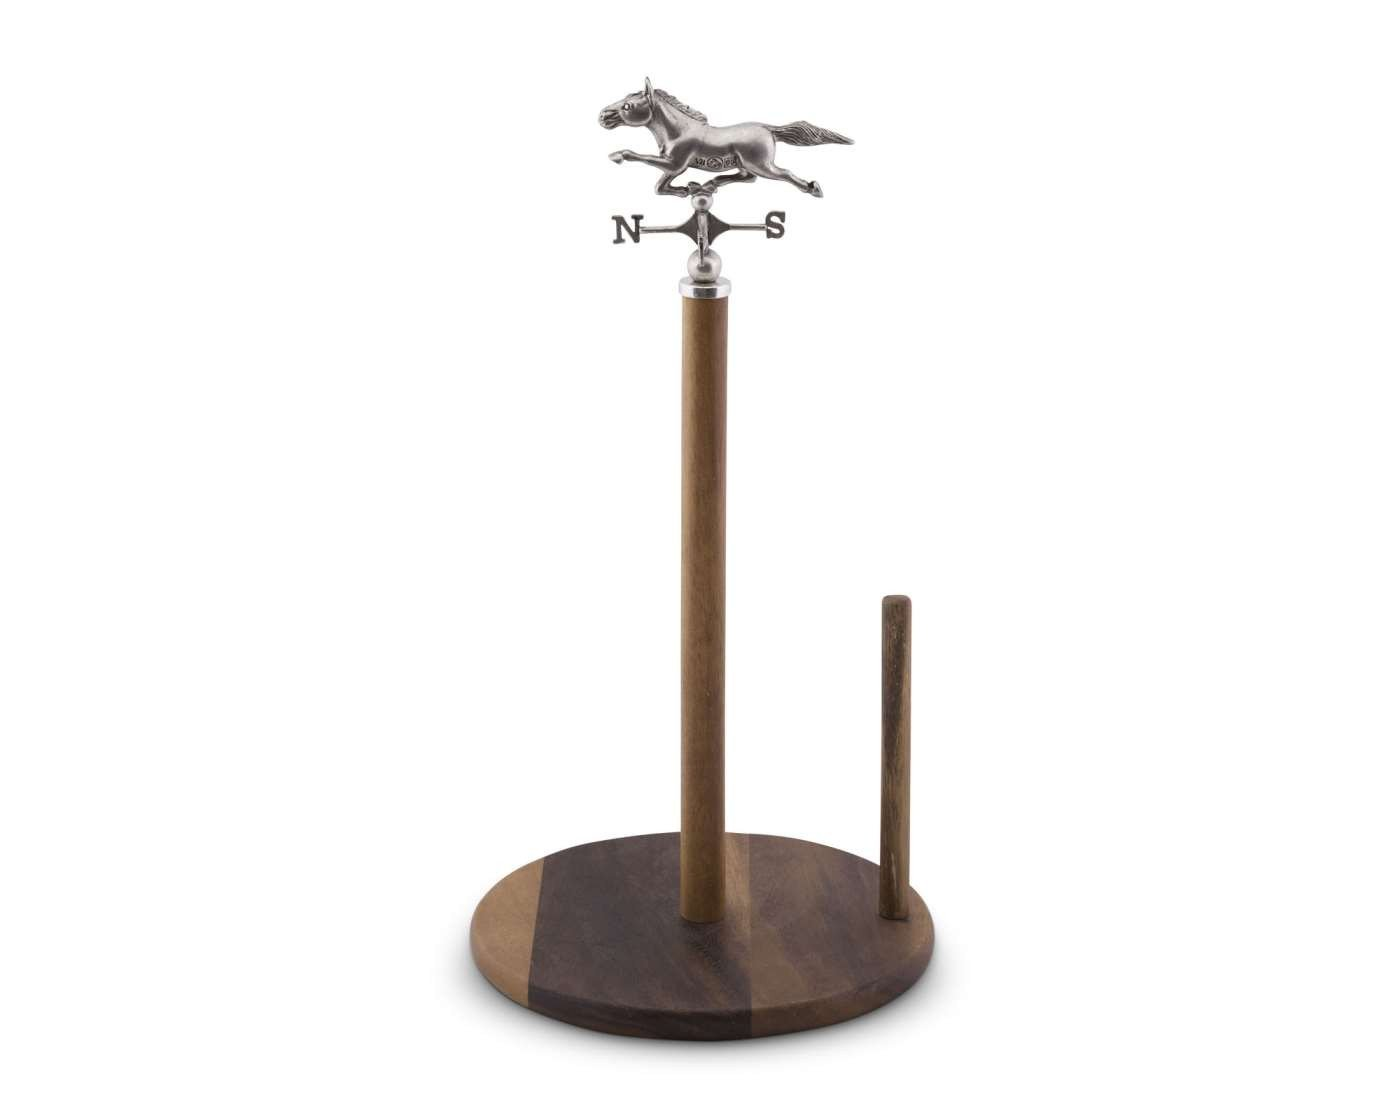 Vagabond House Towel Holder - Horse Weather Vane